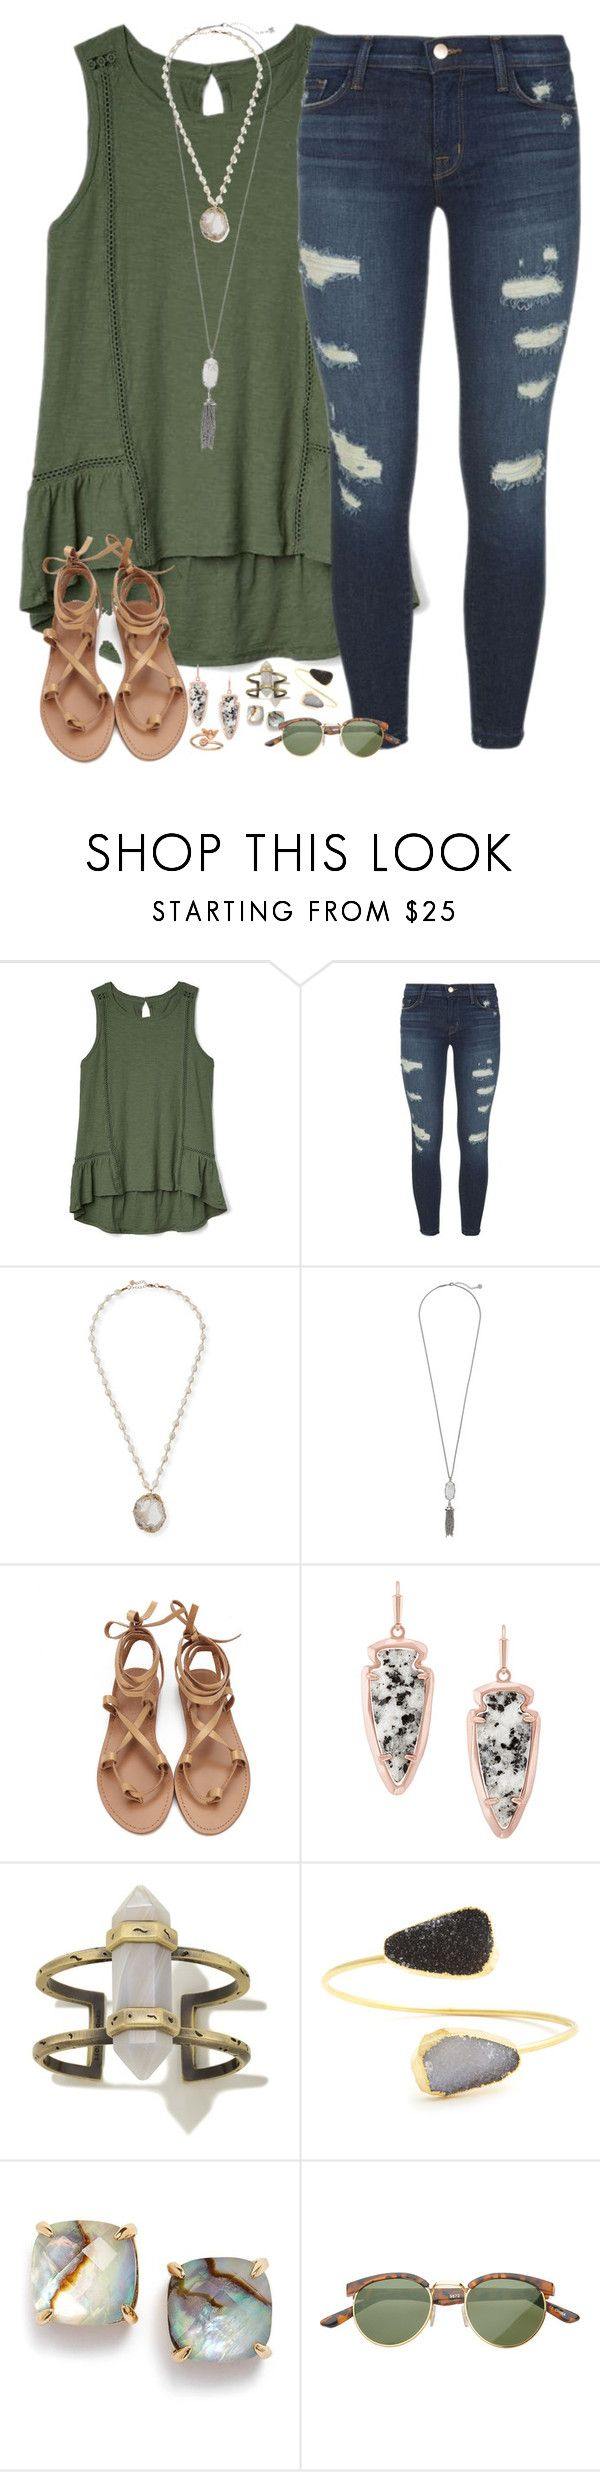 """forever yours"" by kaley-ii ❤ liked on Polyvore featuring Gap, J Brand, NAKAMOL, Kendra Scott, Sole Society, Kate Spade, SW Global and Alex and Ani"